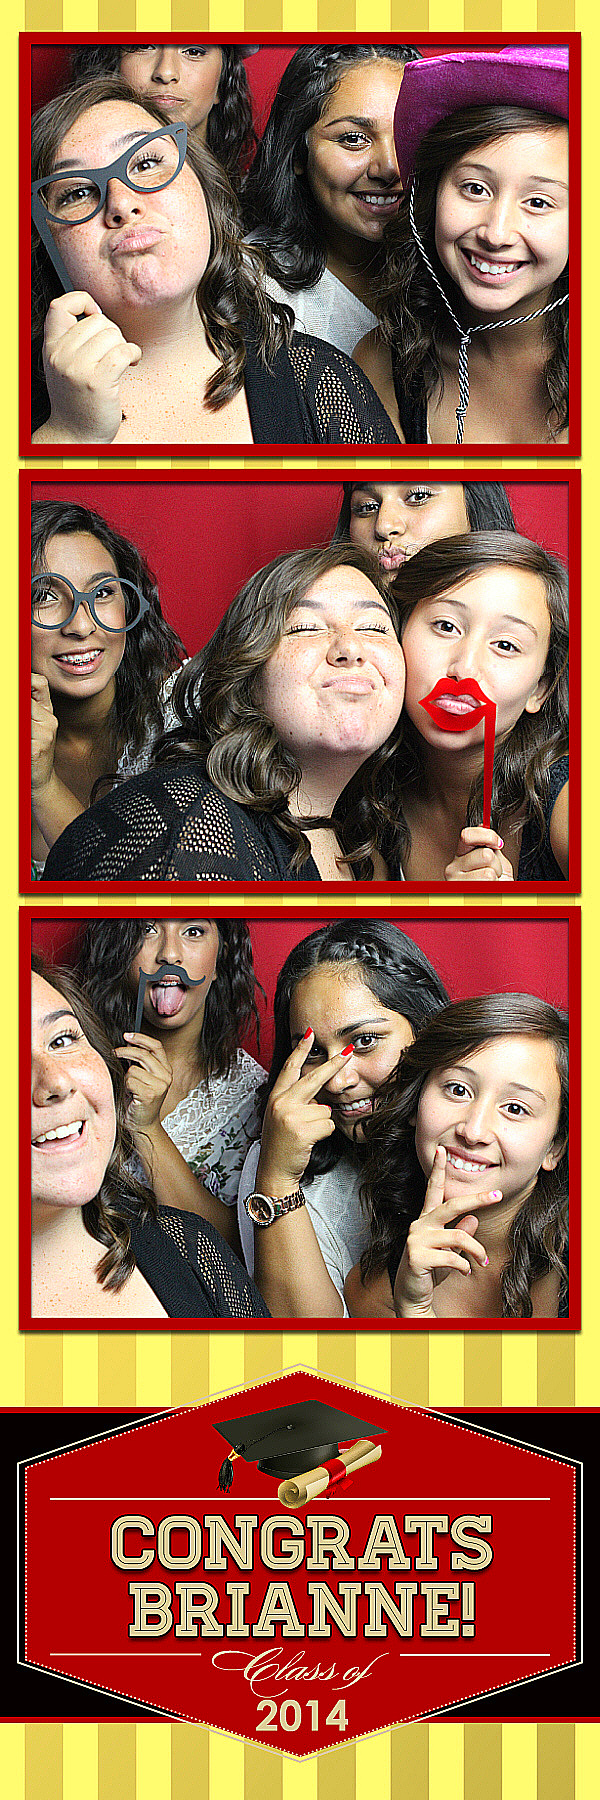 Highland Photo Booth Rental